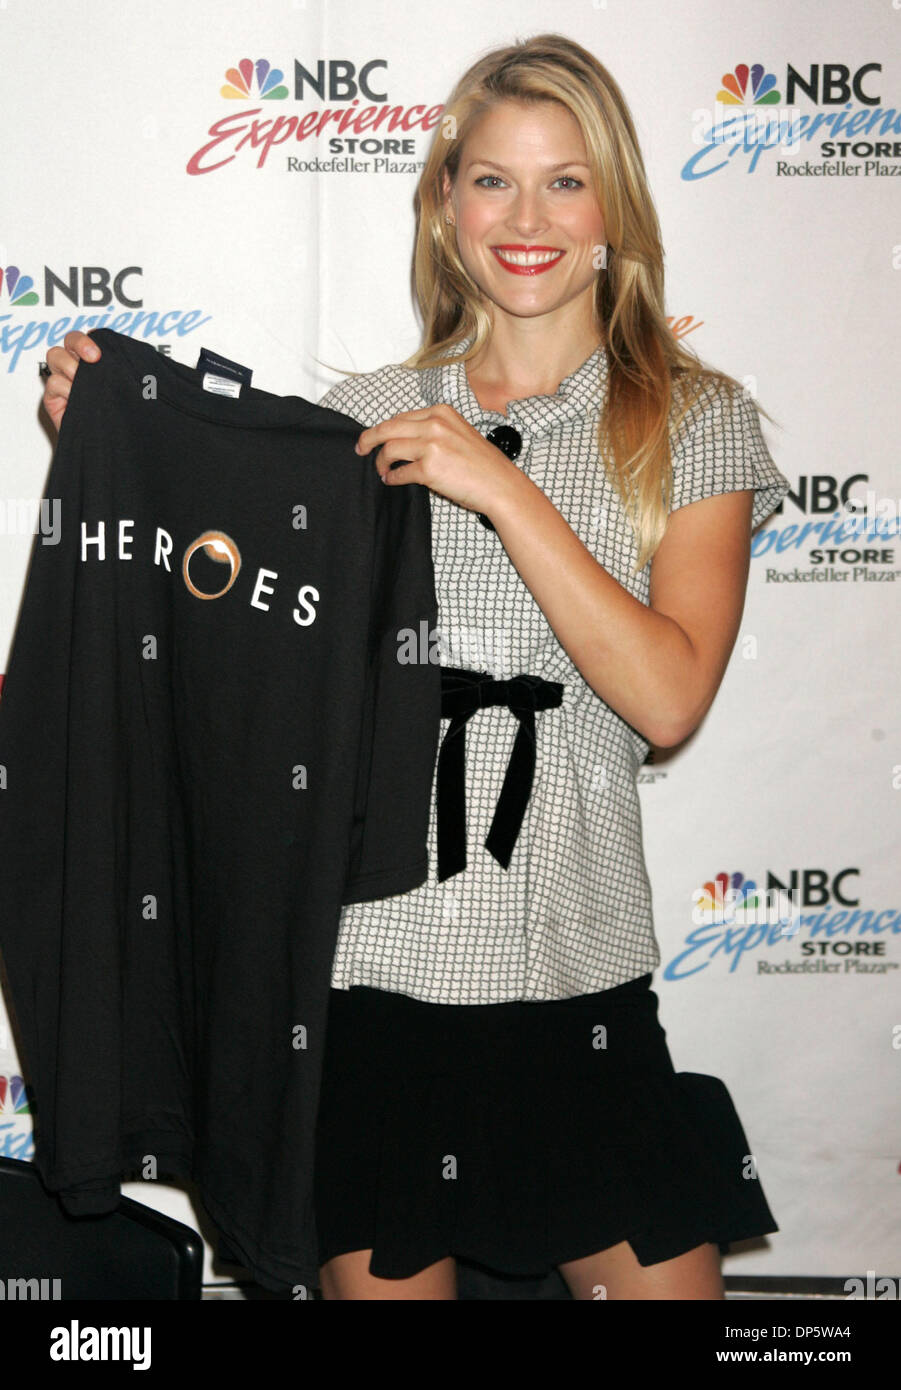 Sep 25, 2006; New York, NY, USA; Actress ALI LARTER promotes her new show 'Heroes' at the NBC Experience Store. Stock Photo